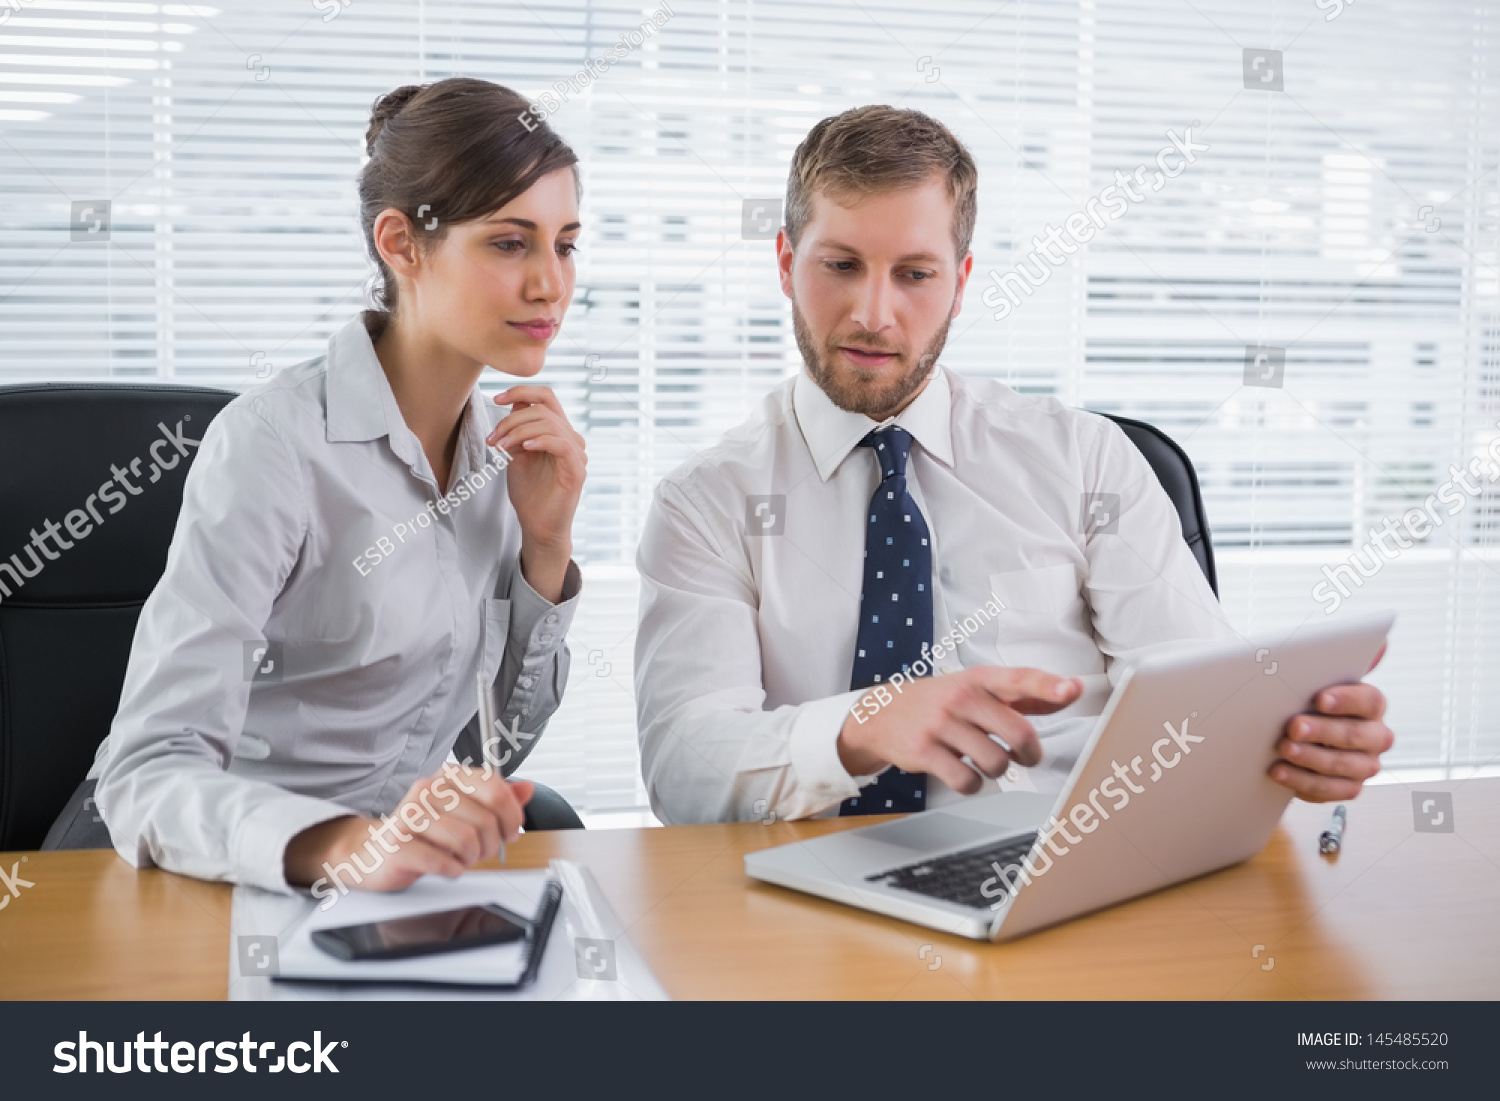 hight resolution of business people working together on laptop stock photo